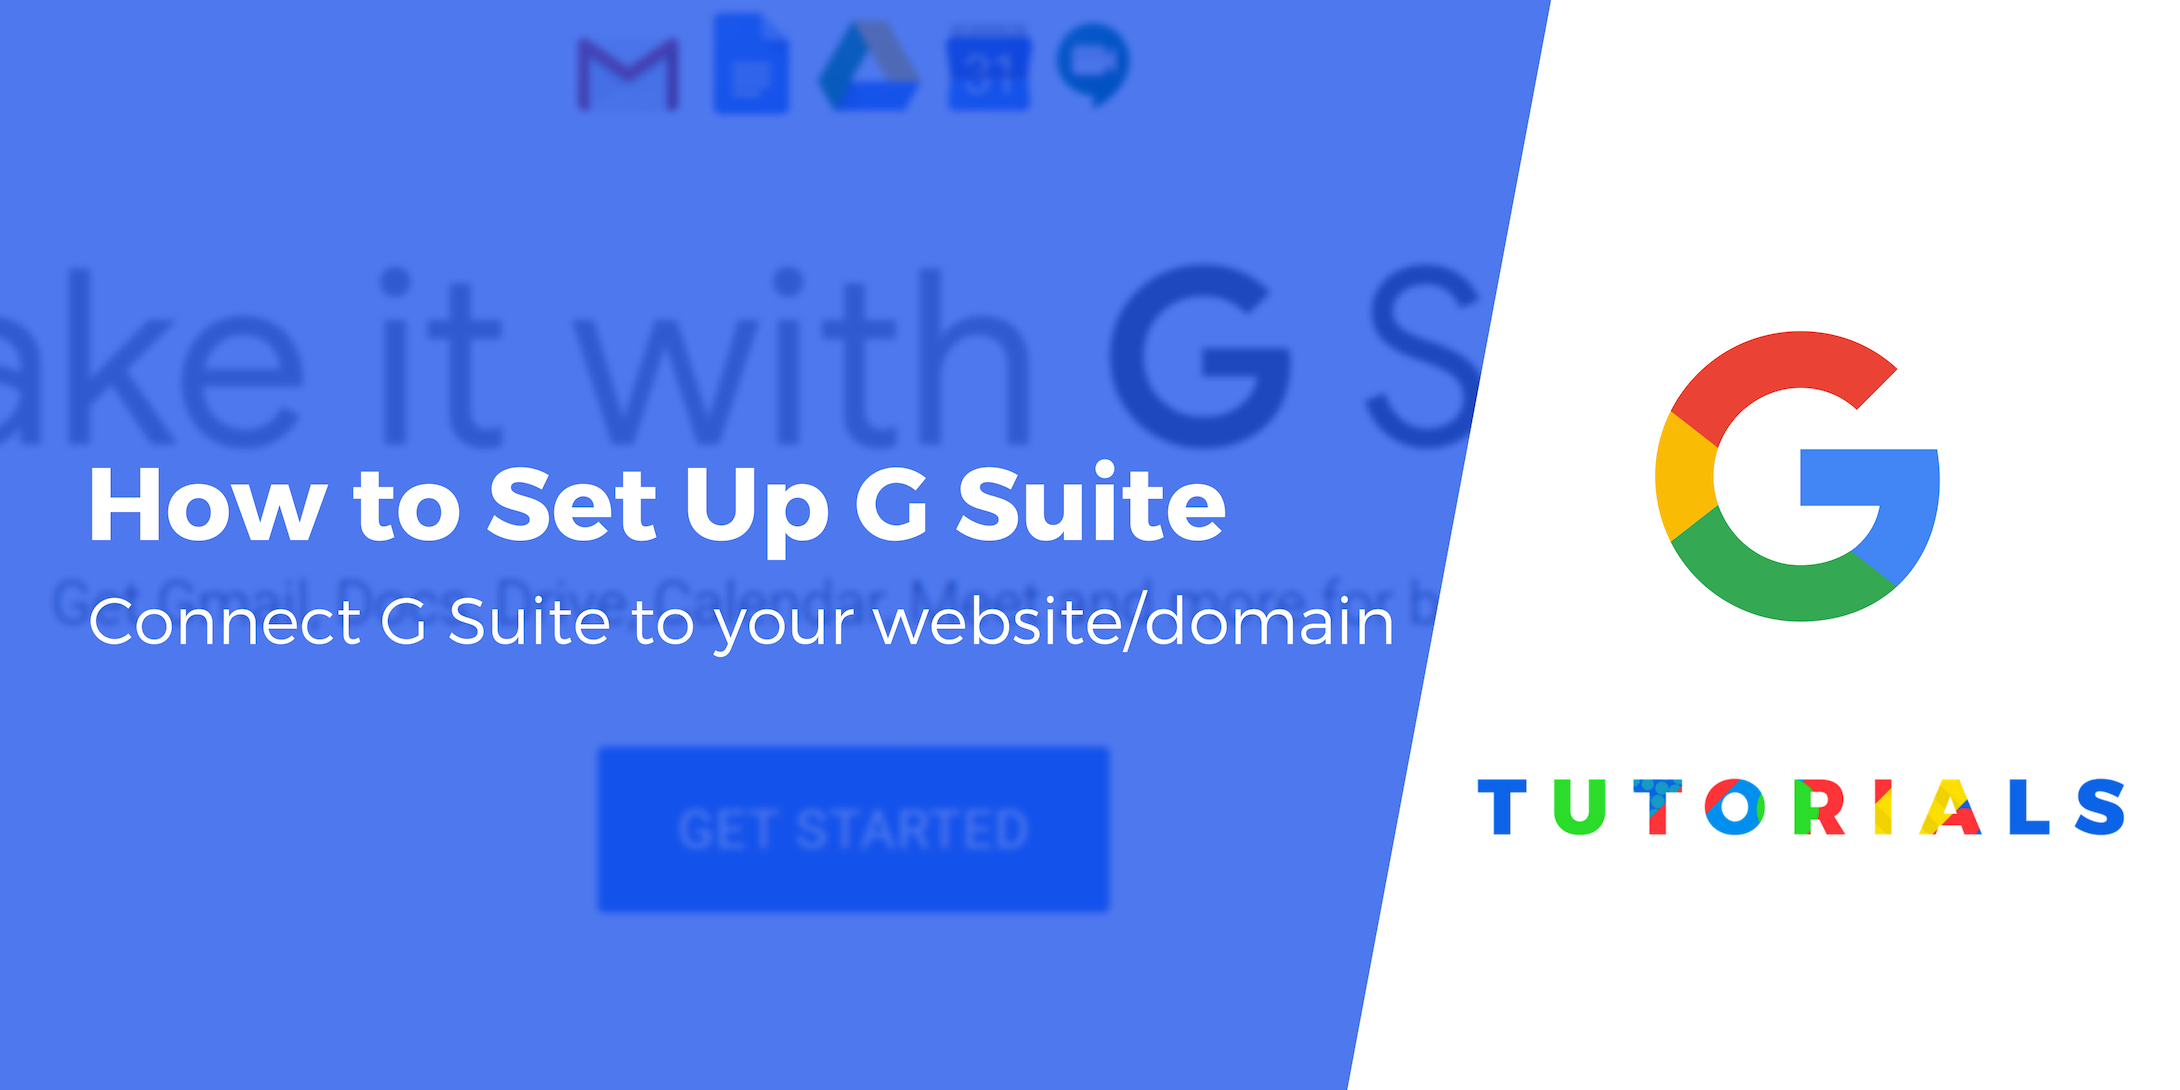 Set Up G Suite